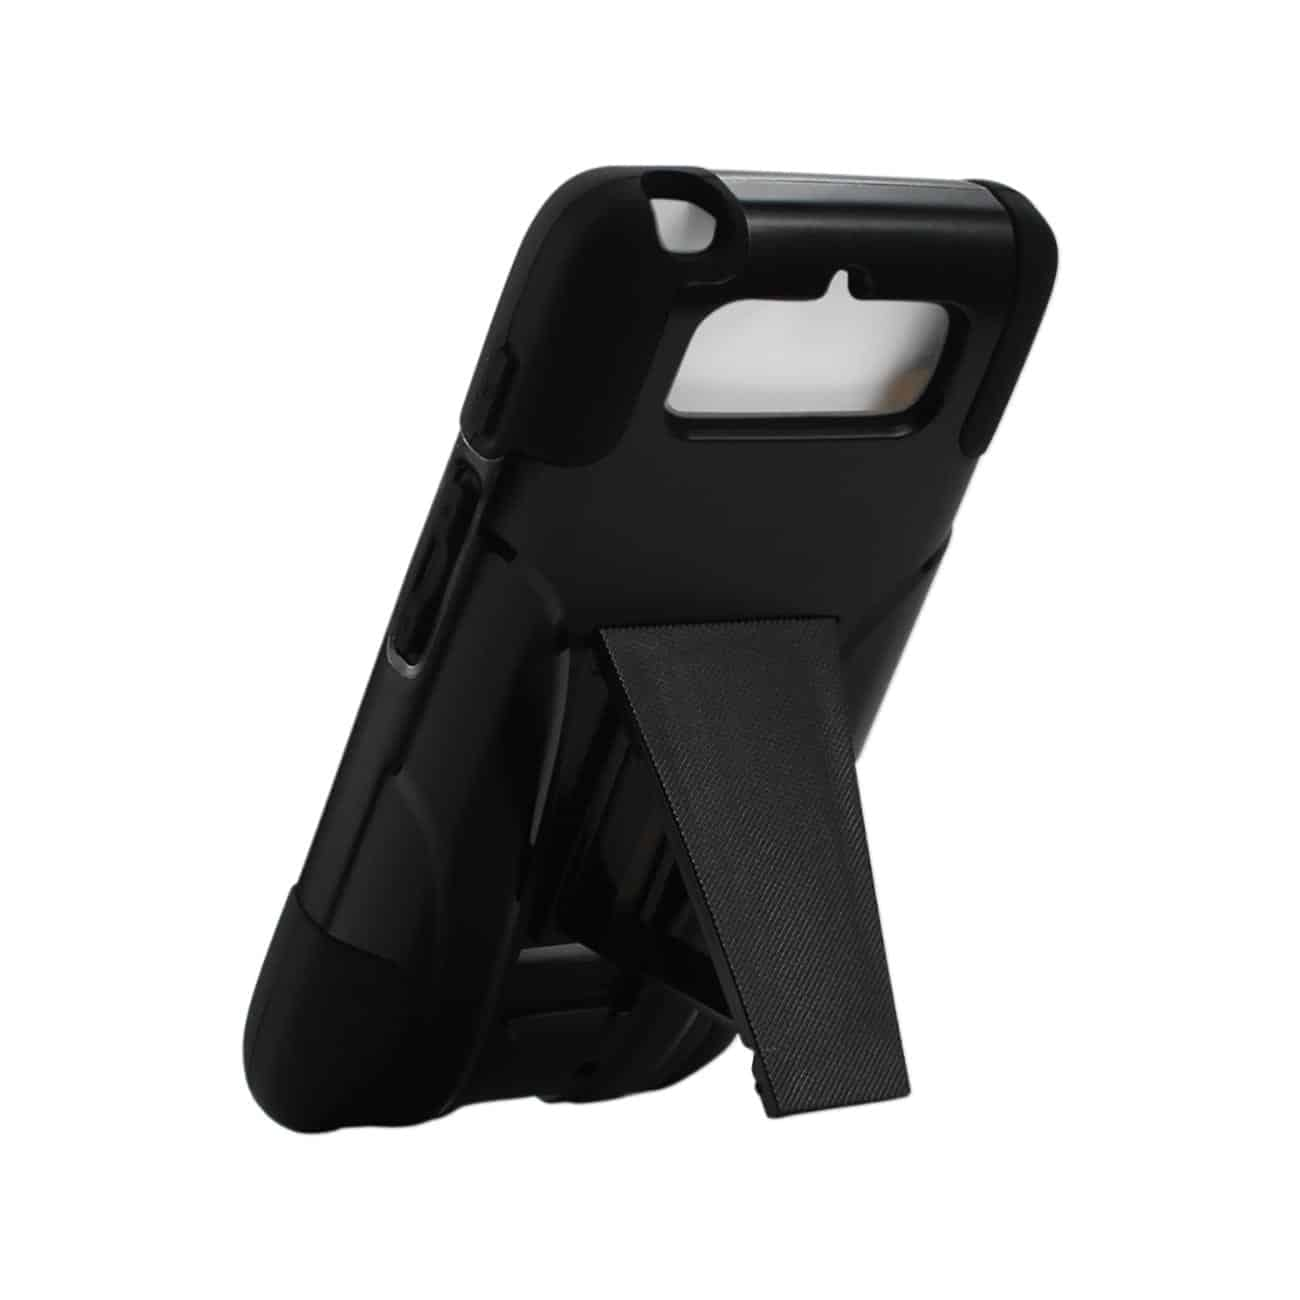 MOTOROLA DROID MINI HYBRID HEAVY DUTY CASE WITH KICKSTAND IN BLACK